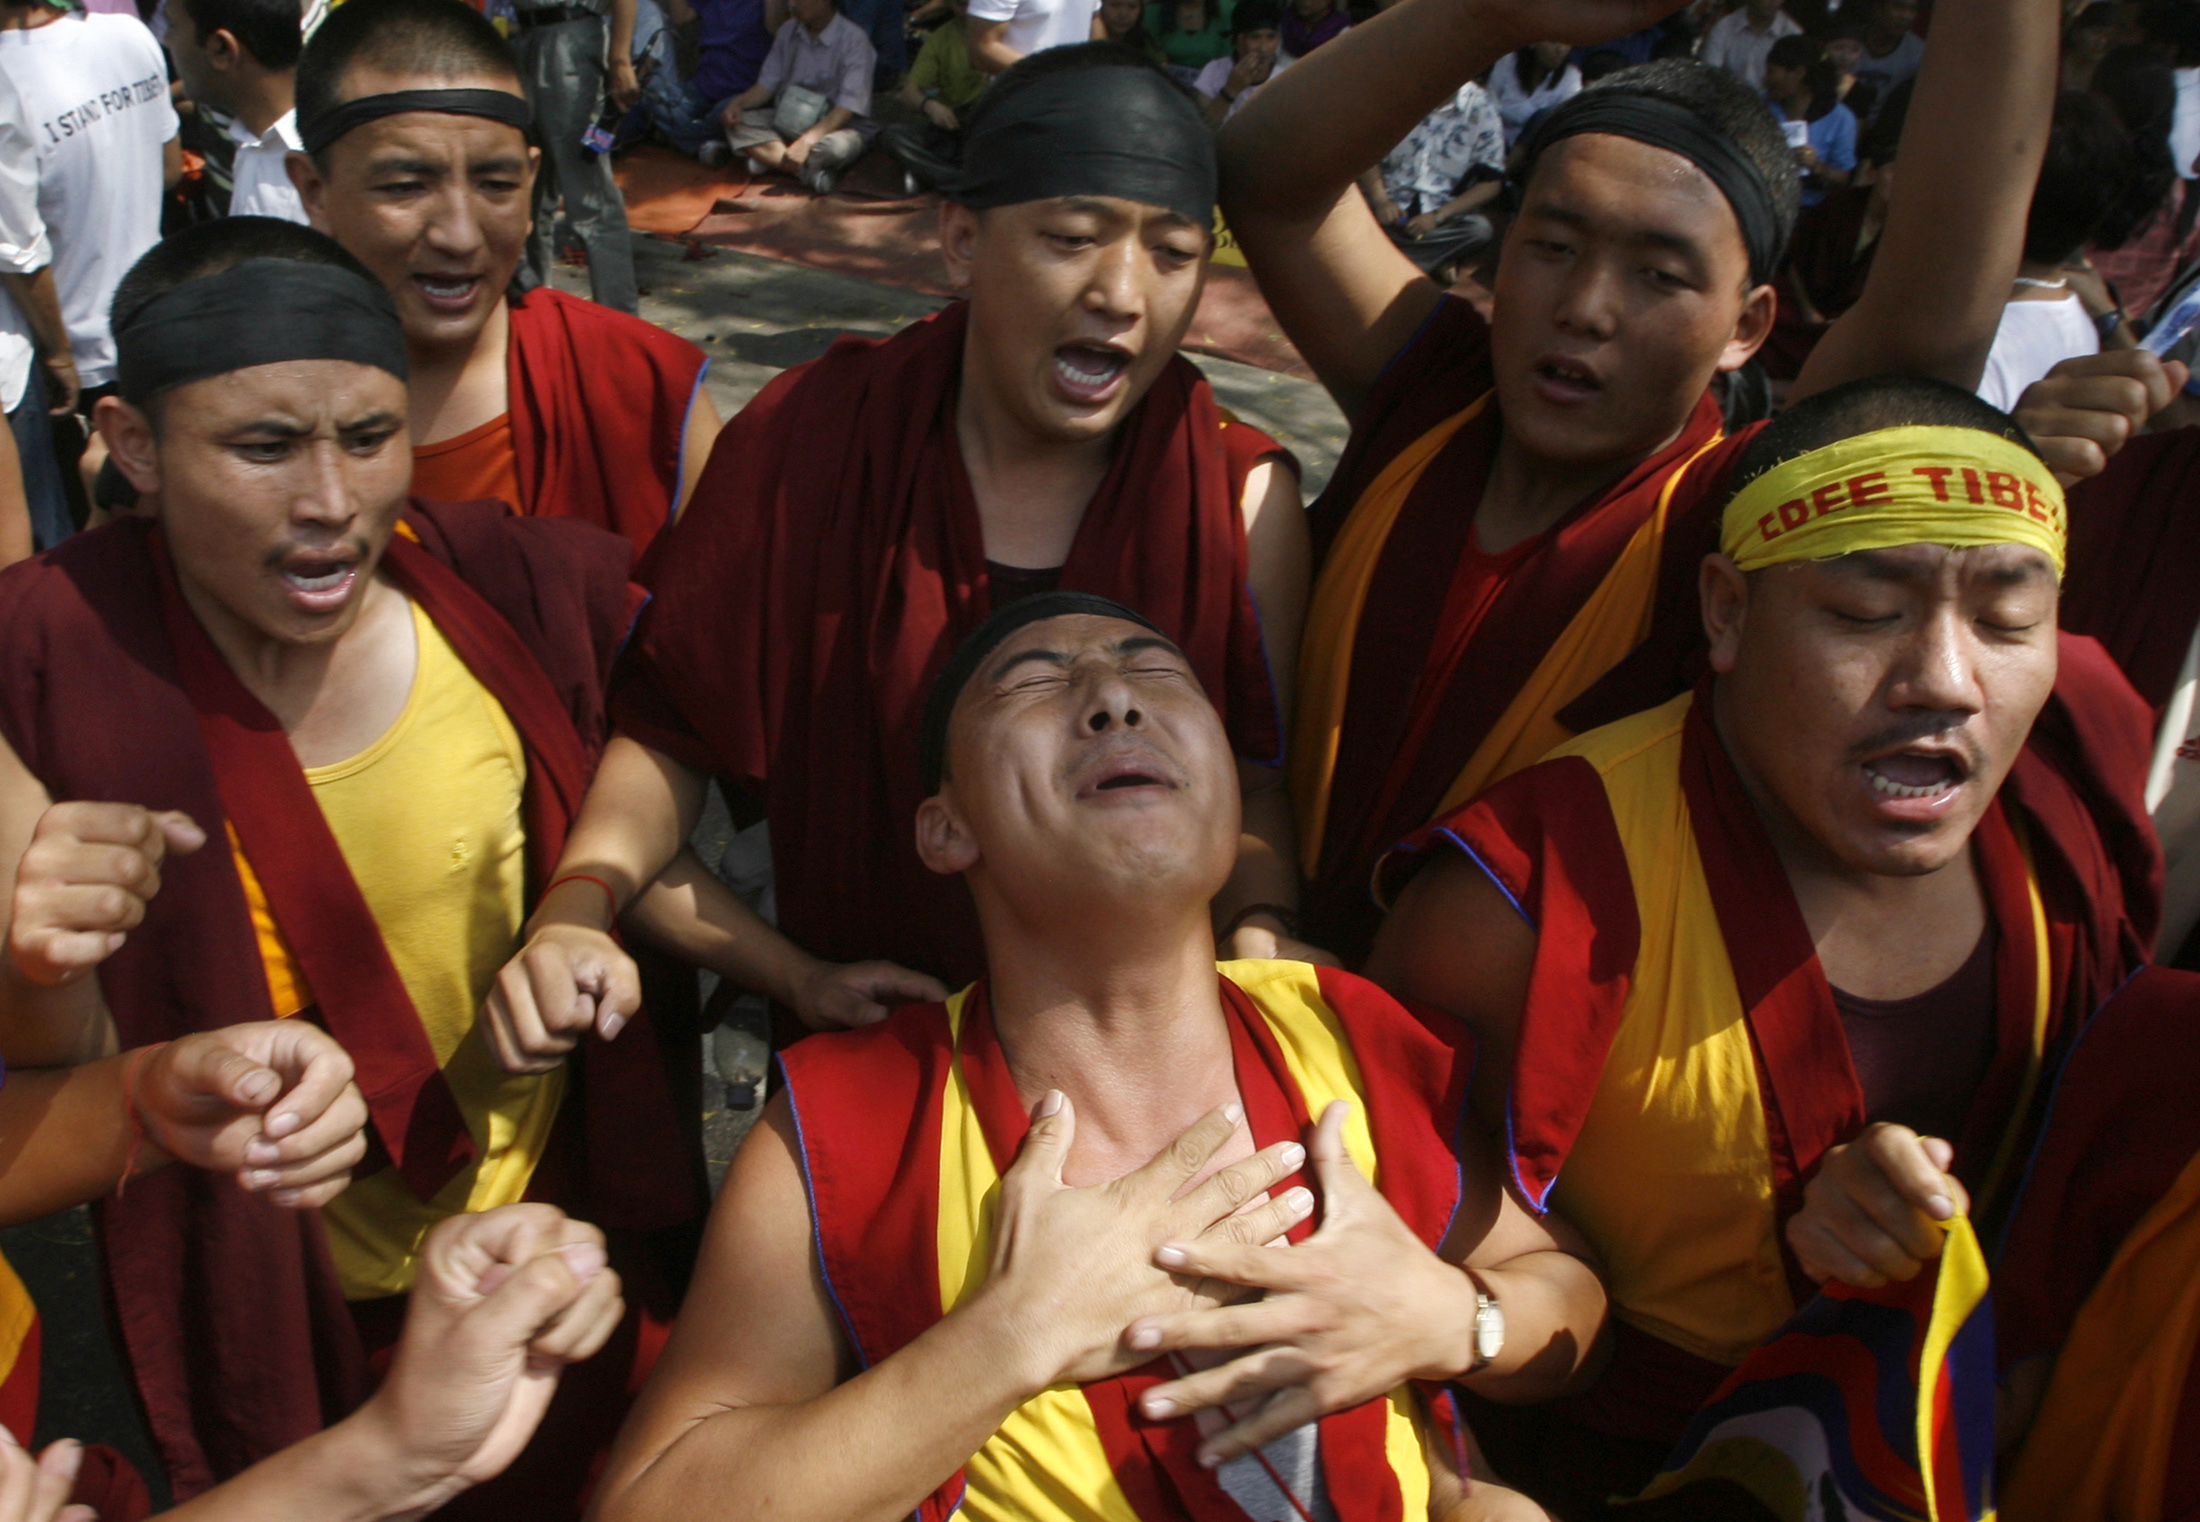 Tibetan monks shout slogans during a protest in New Delhi